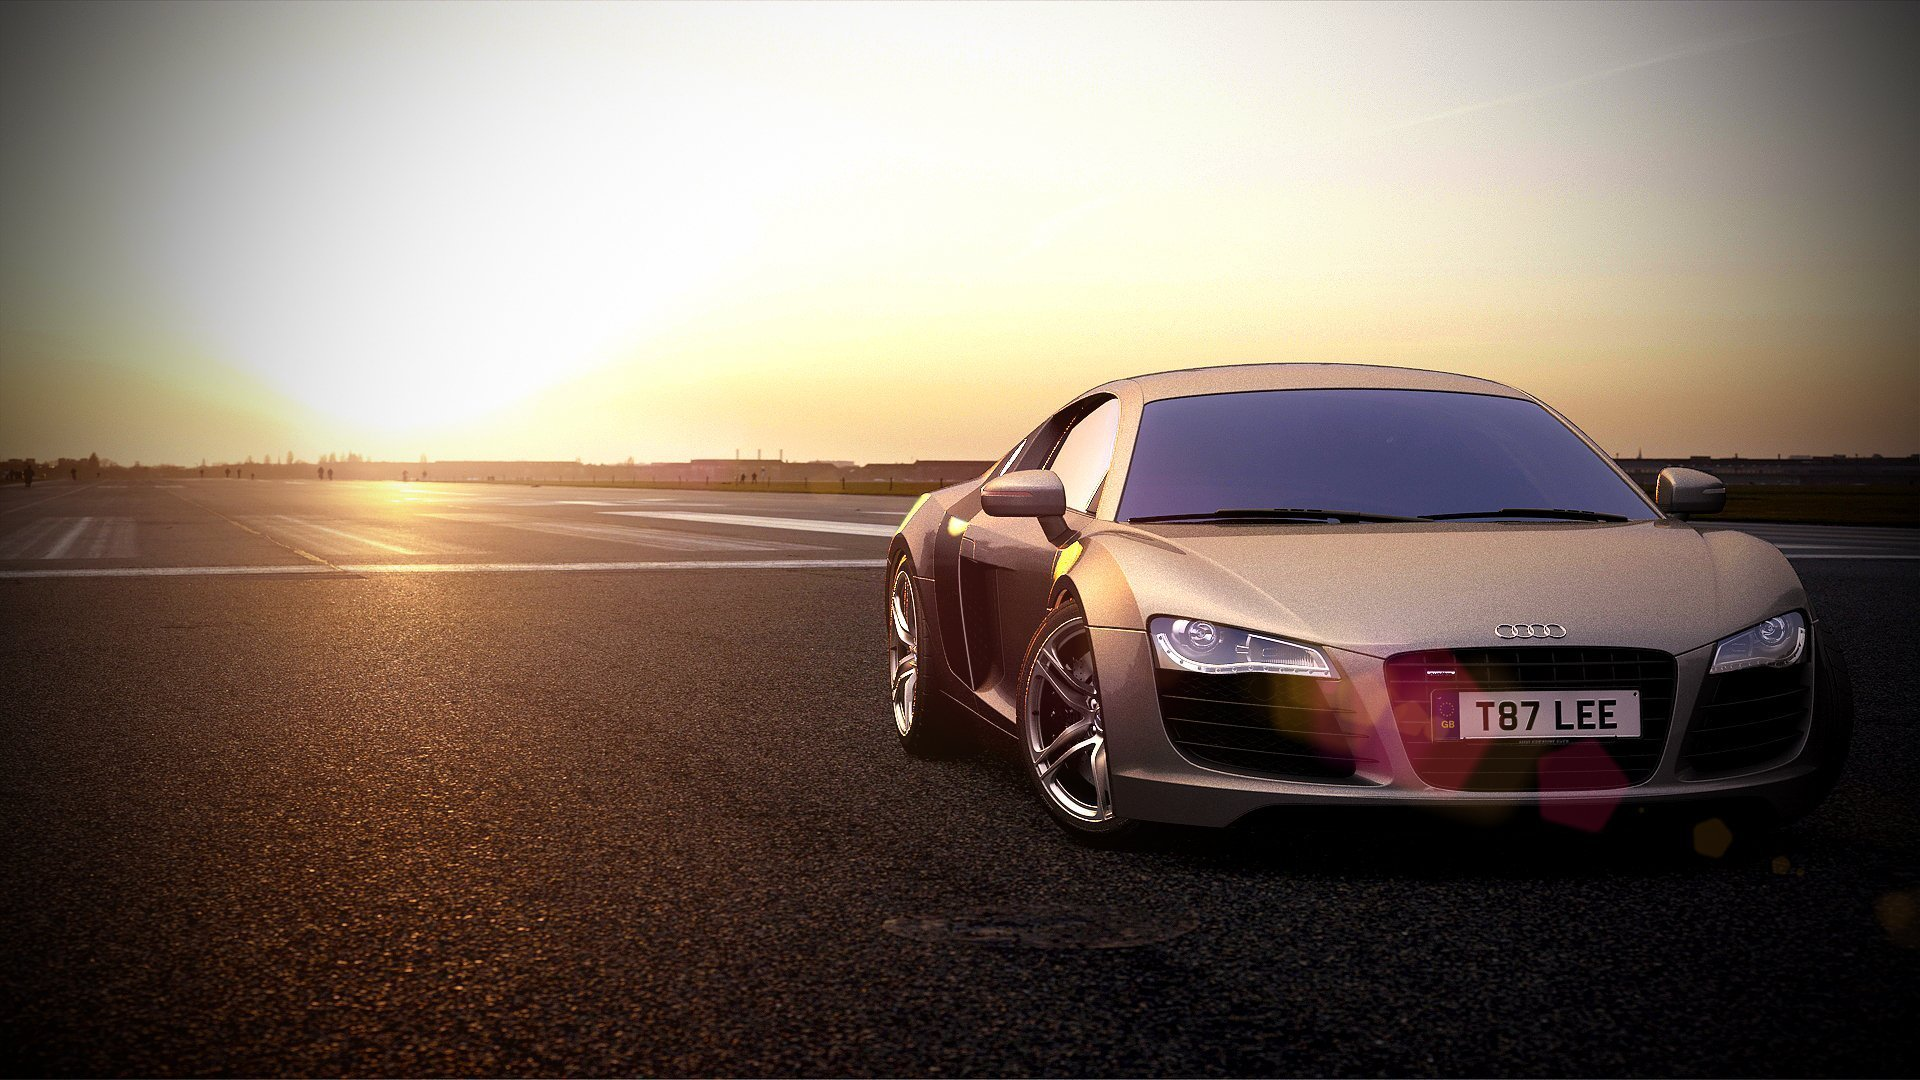 Latest Audi R8 Full Hd Wallpaper And Background Image 1920X1080 Free Download